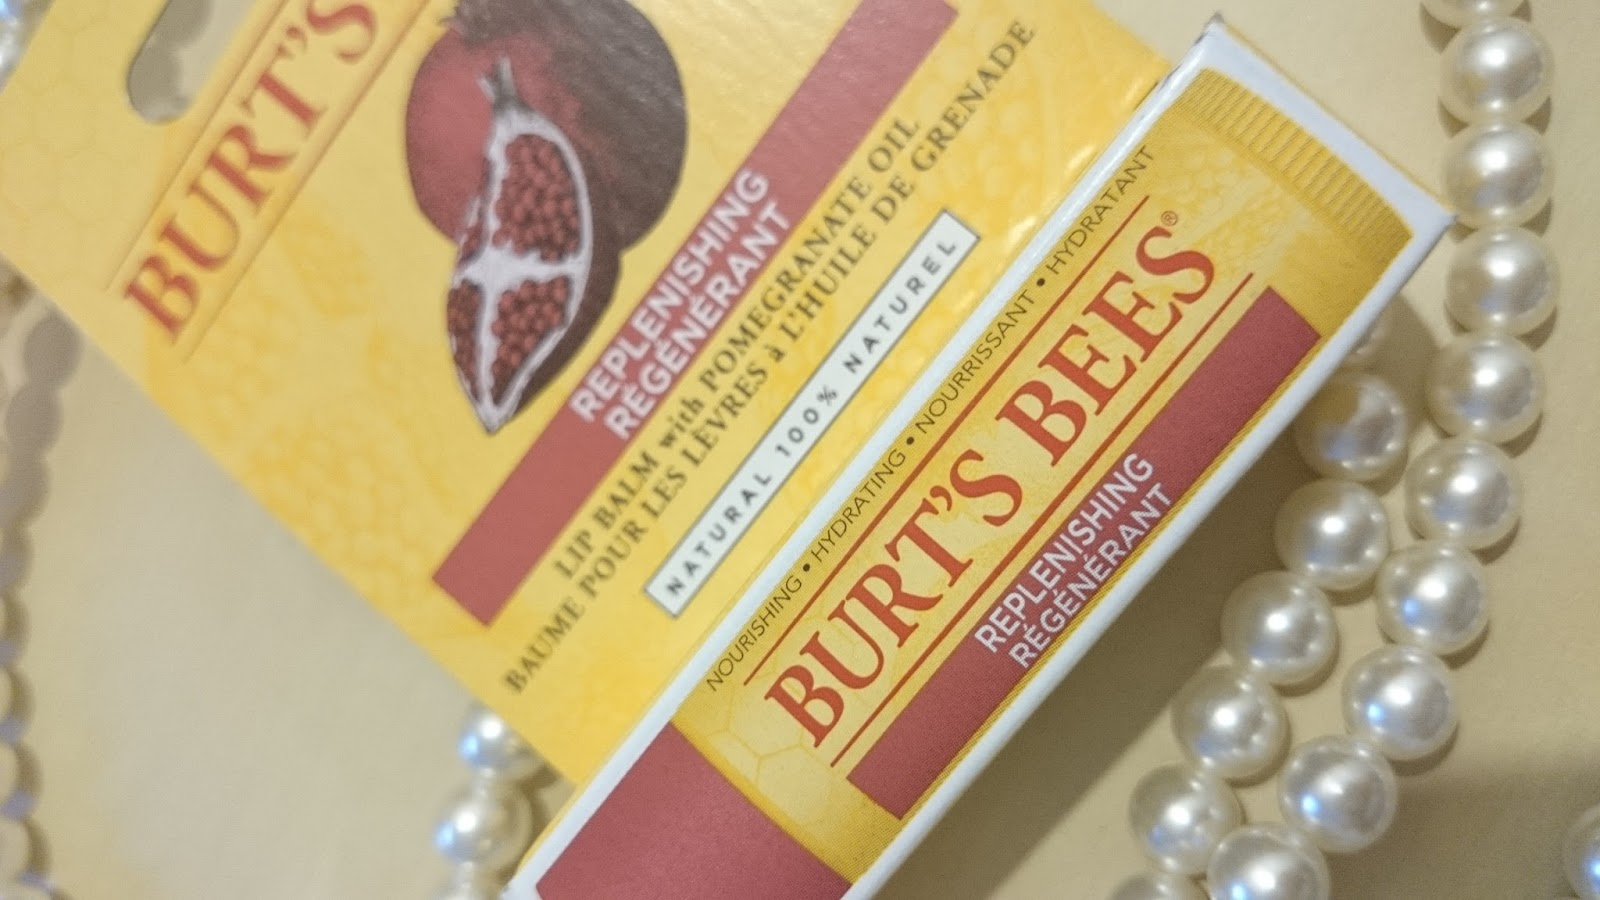 Burt´s Bees Replenishing Régénérant Lip Balm with Pomegranate Oil